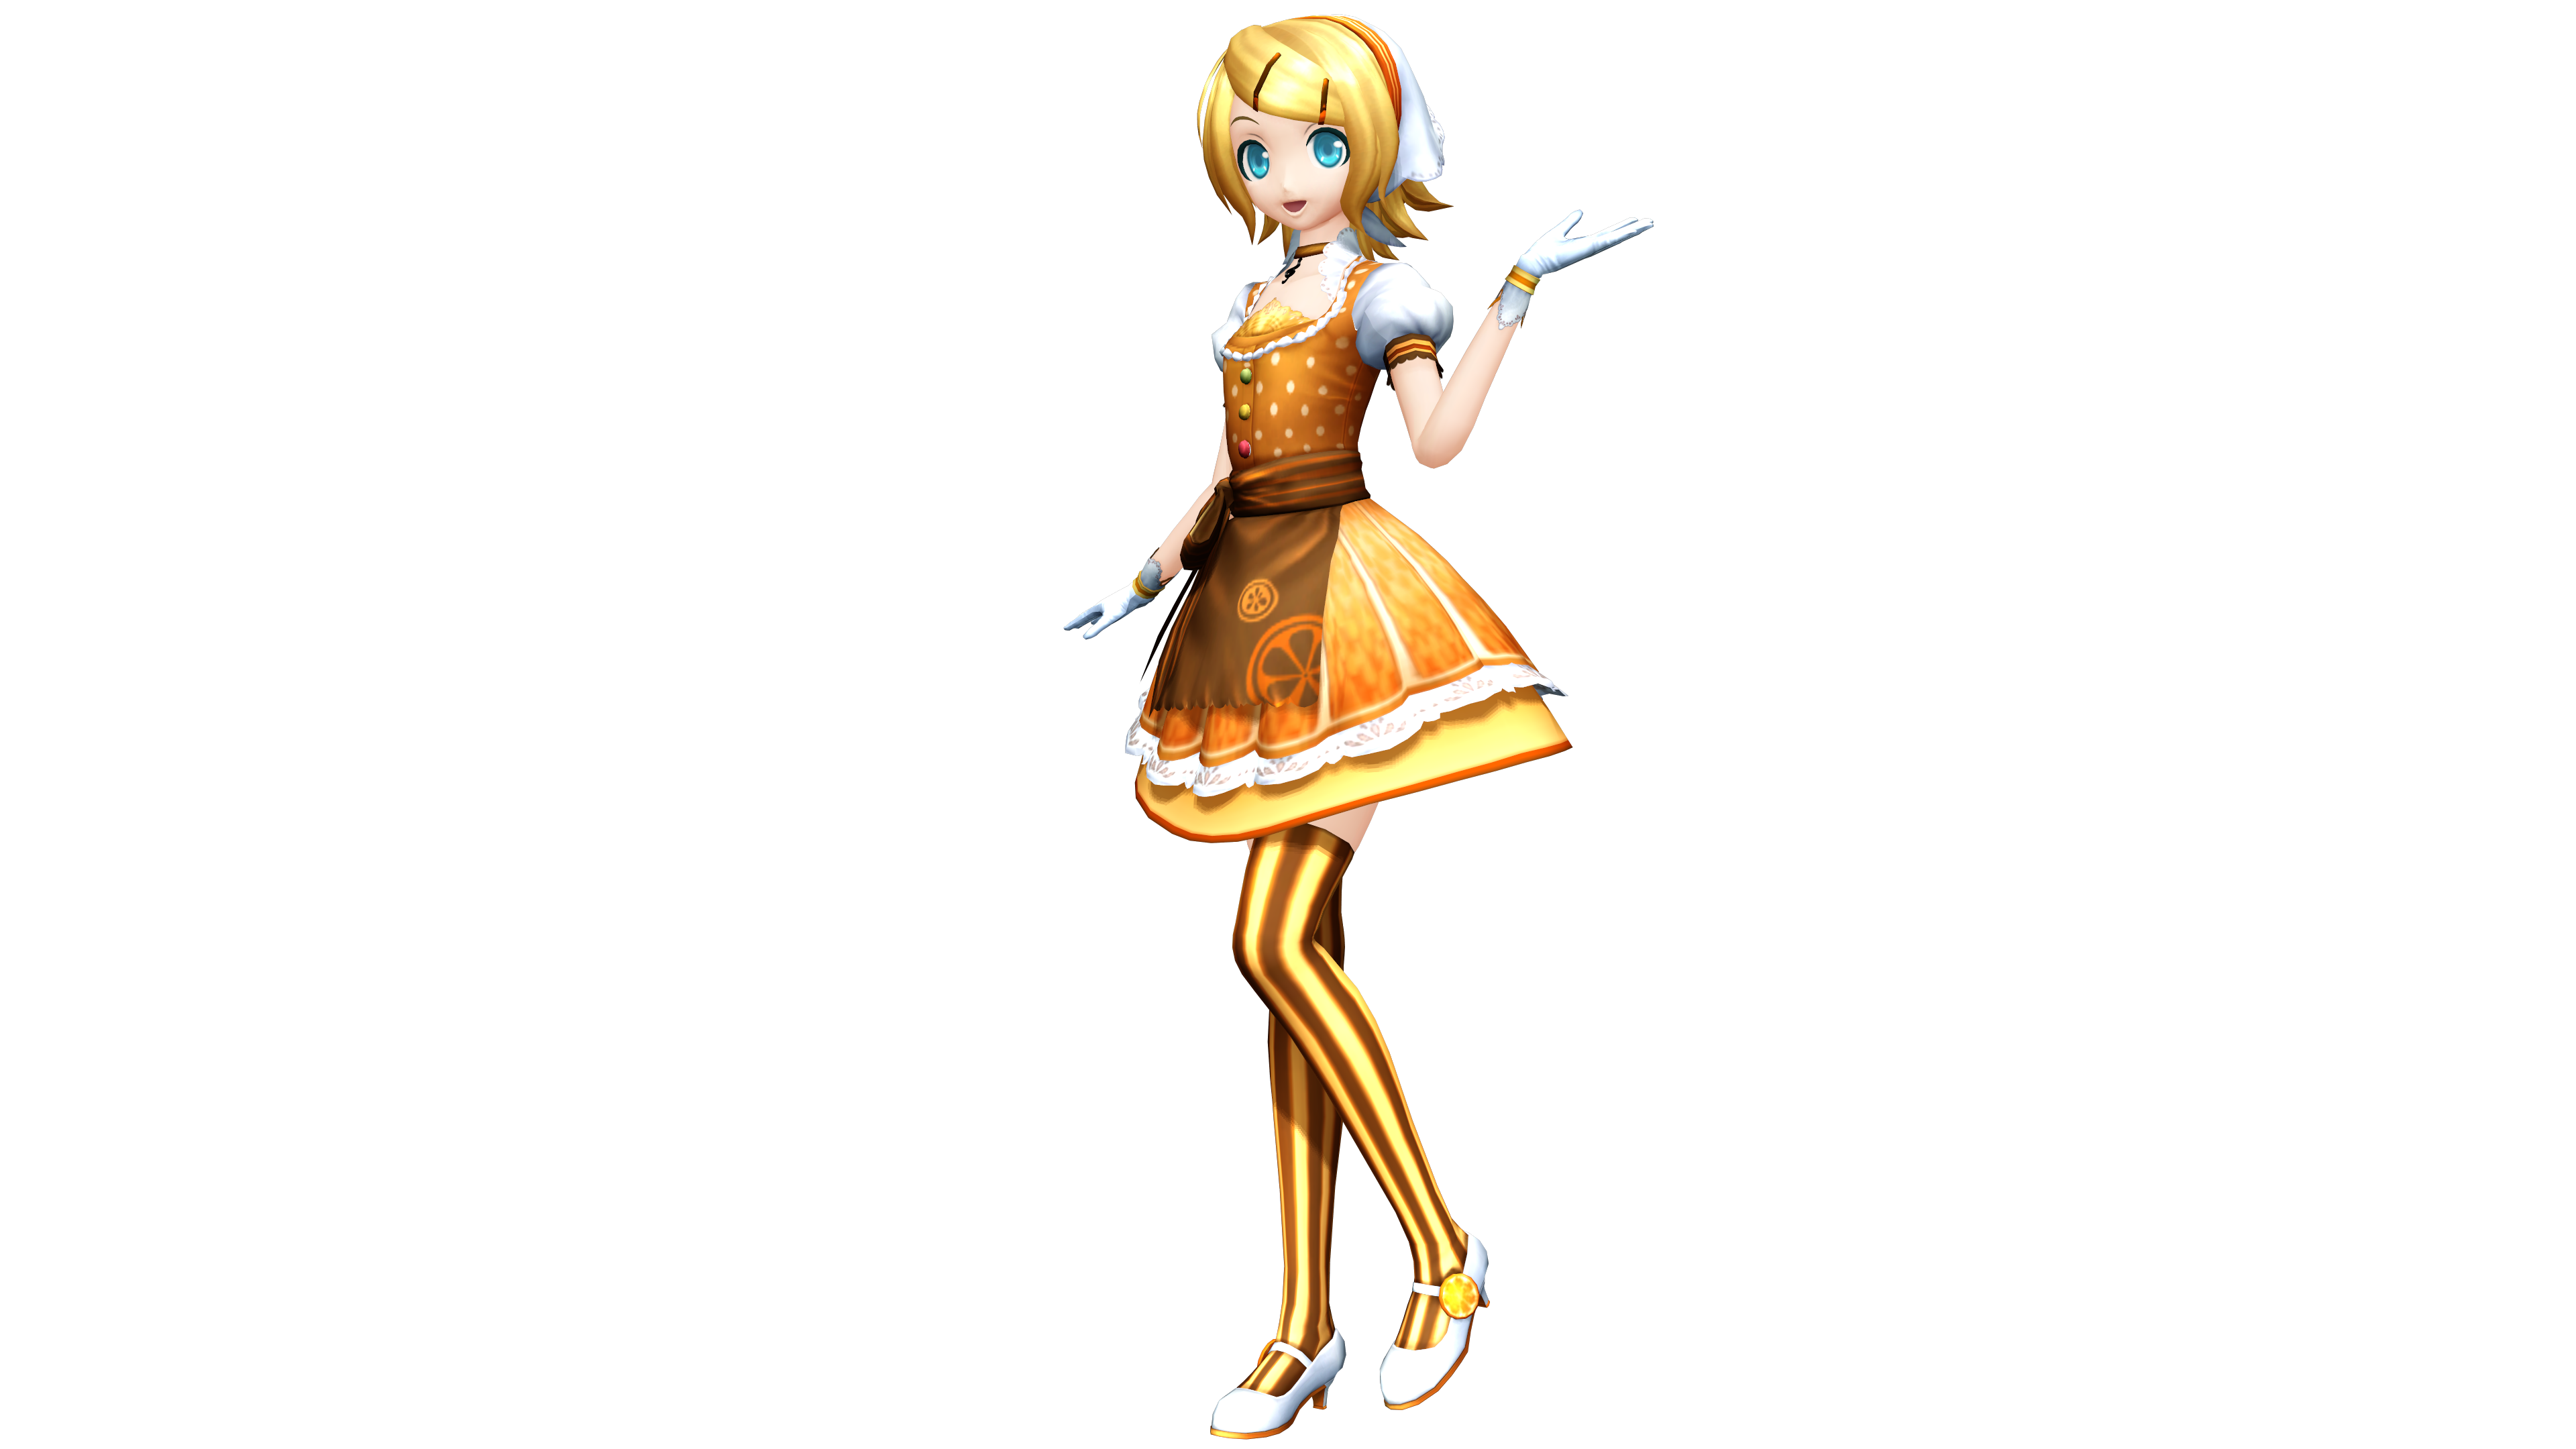 Project diva x patisserie gretel rin by luke flame on - Kagamine rin project diva ...